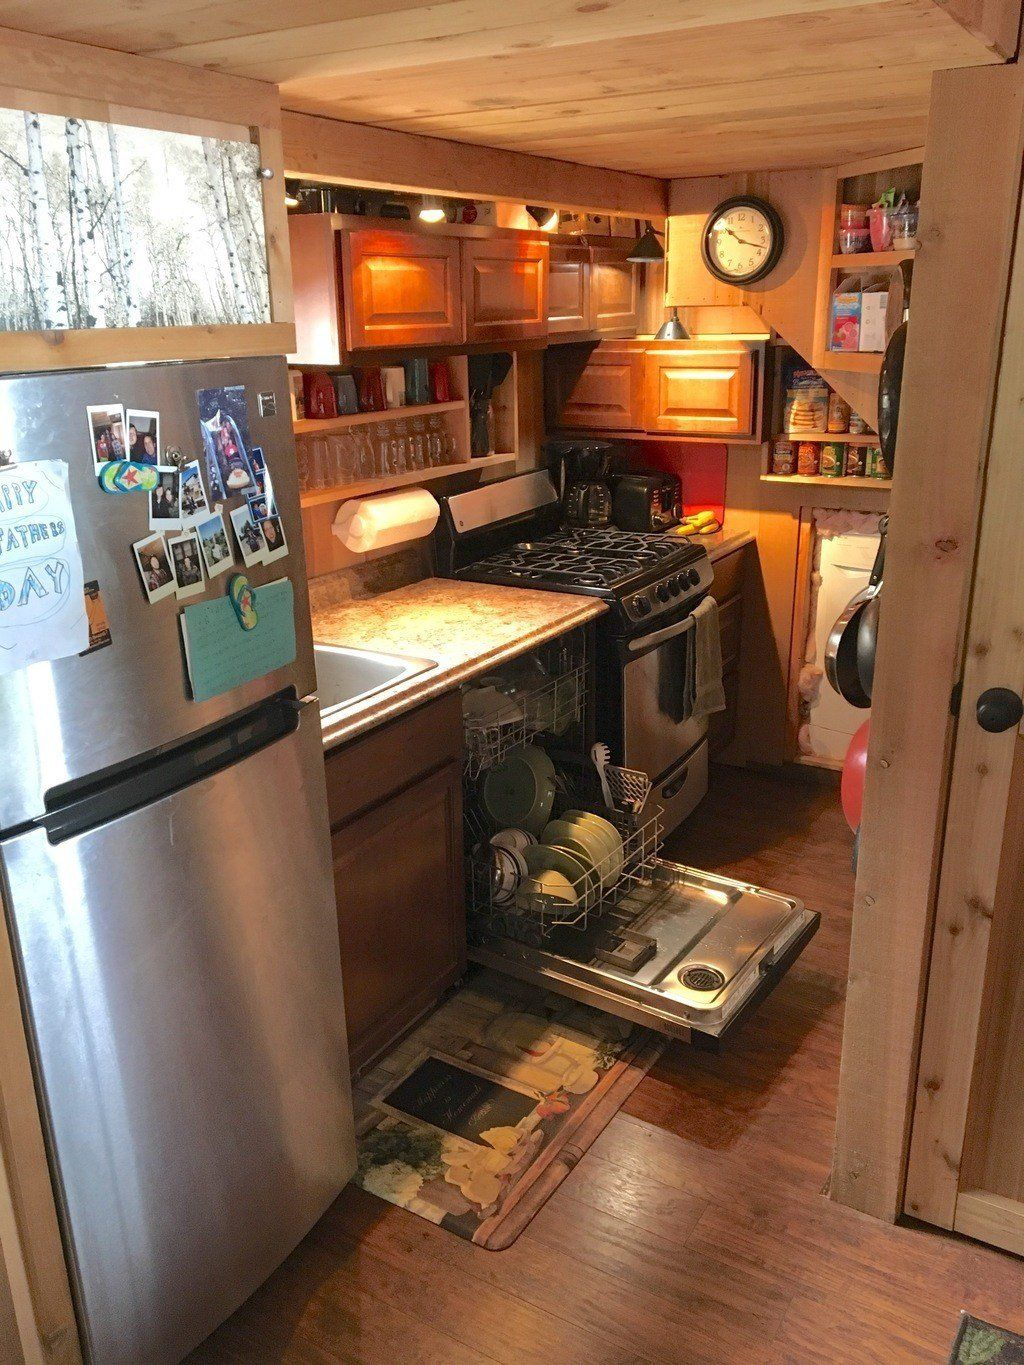 Tiny House Listings Tiny Houses For Sale And Rent Outdoor Kitchen Appliances Kitchen Kitchen Design